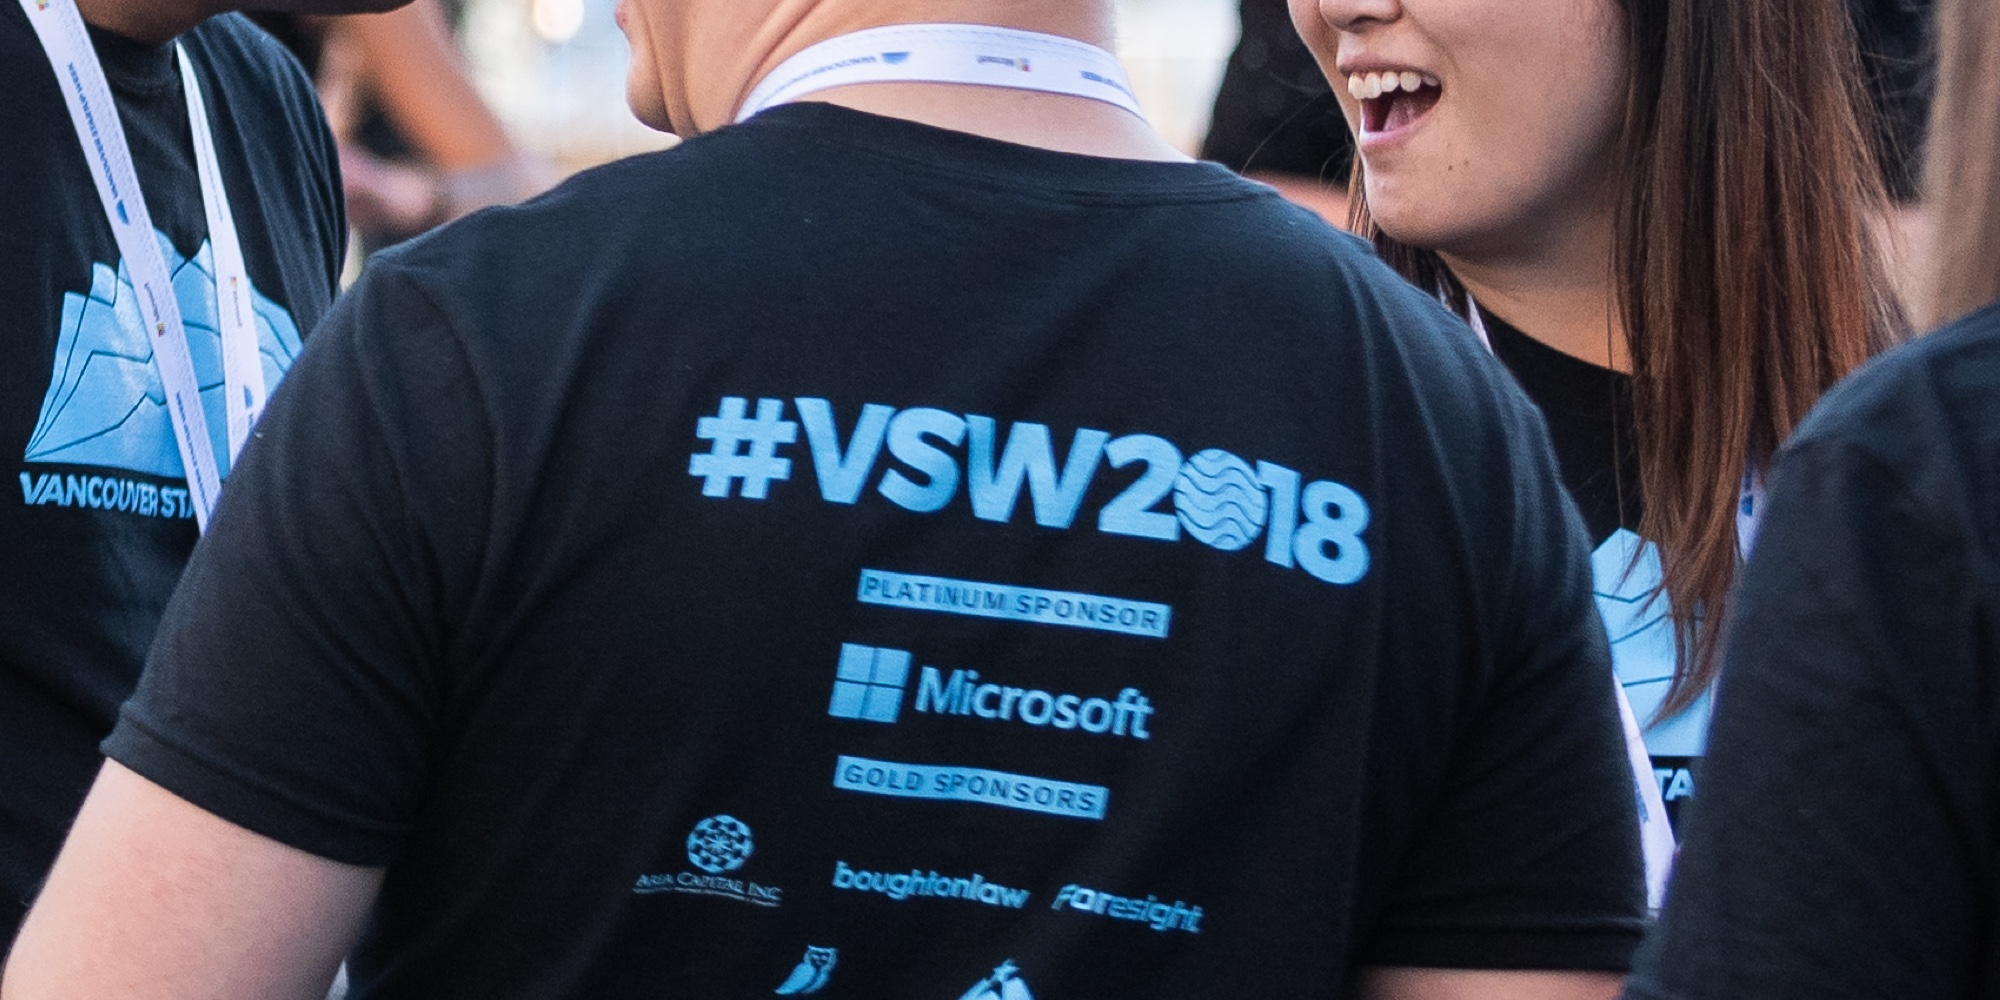 The Importance of events like Vancouver Startup Week